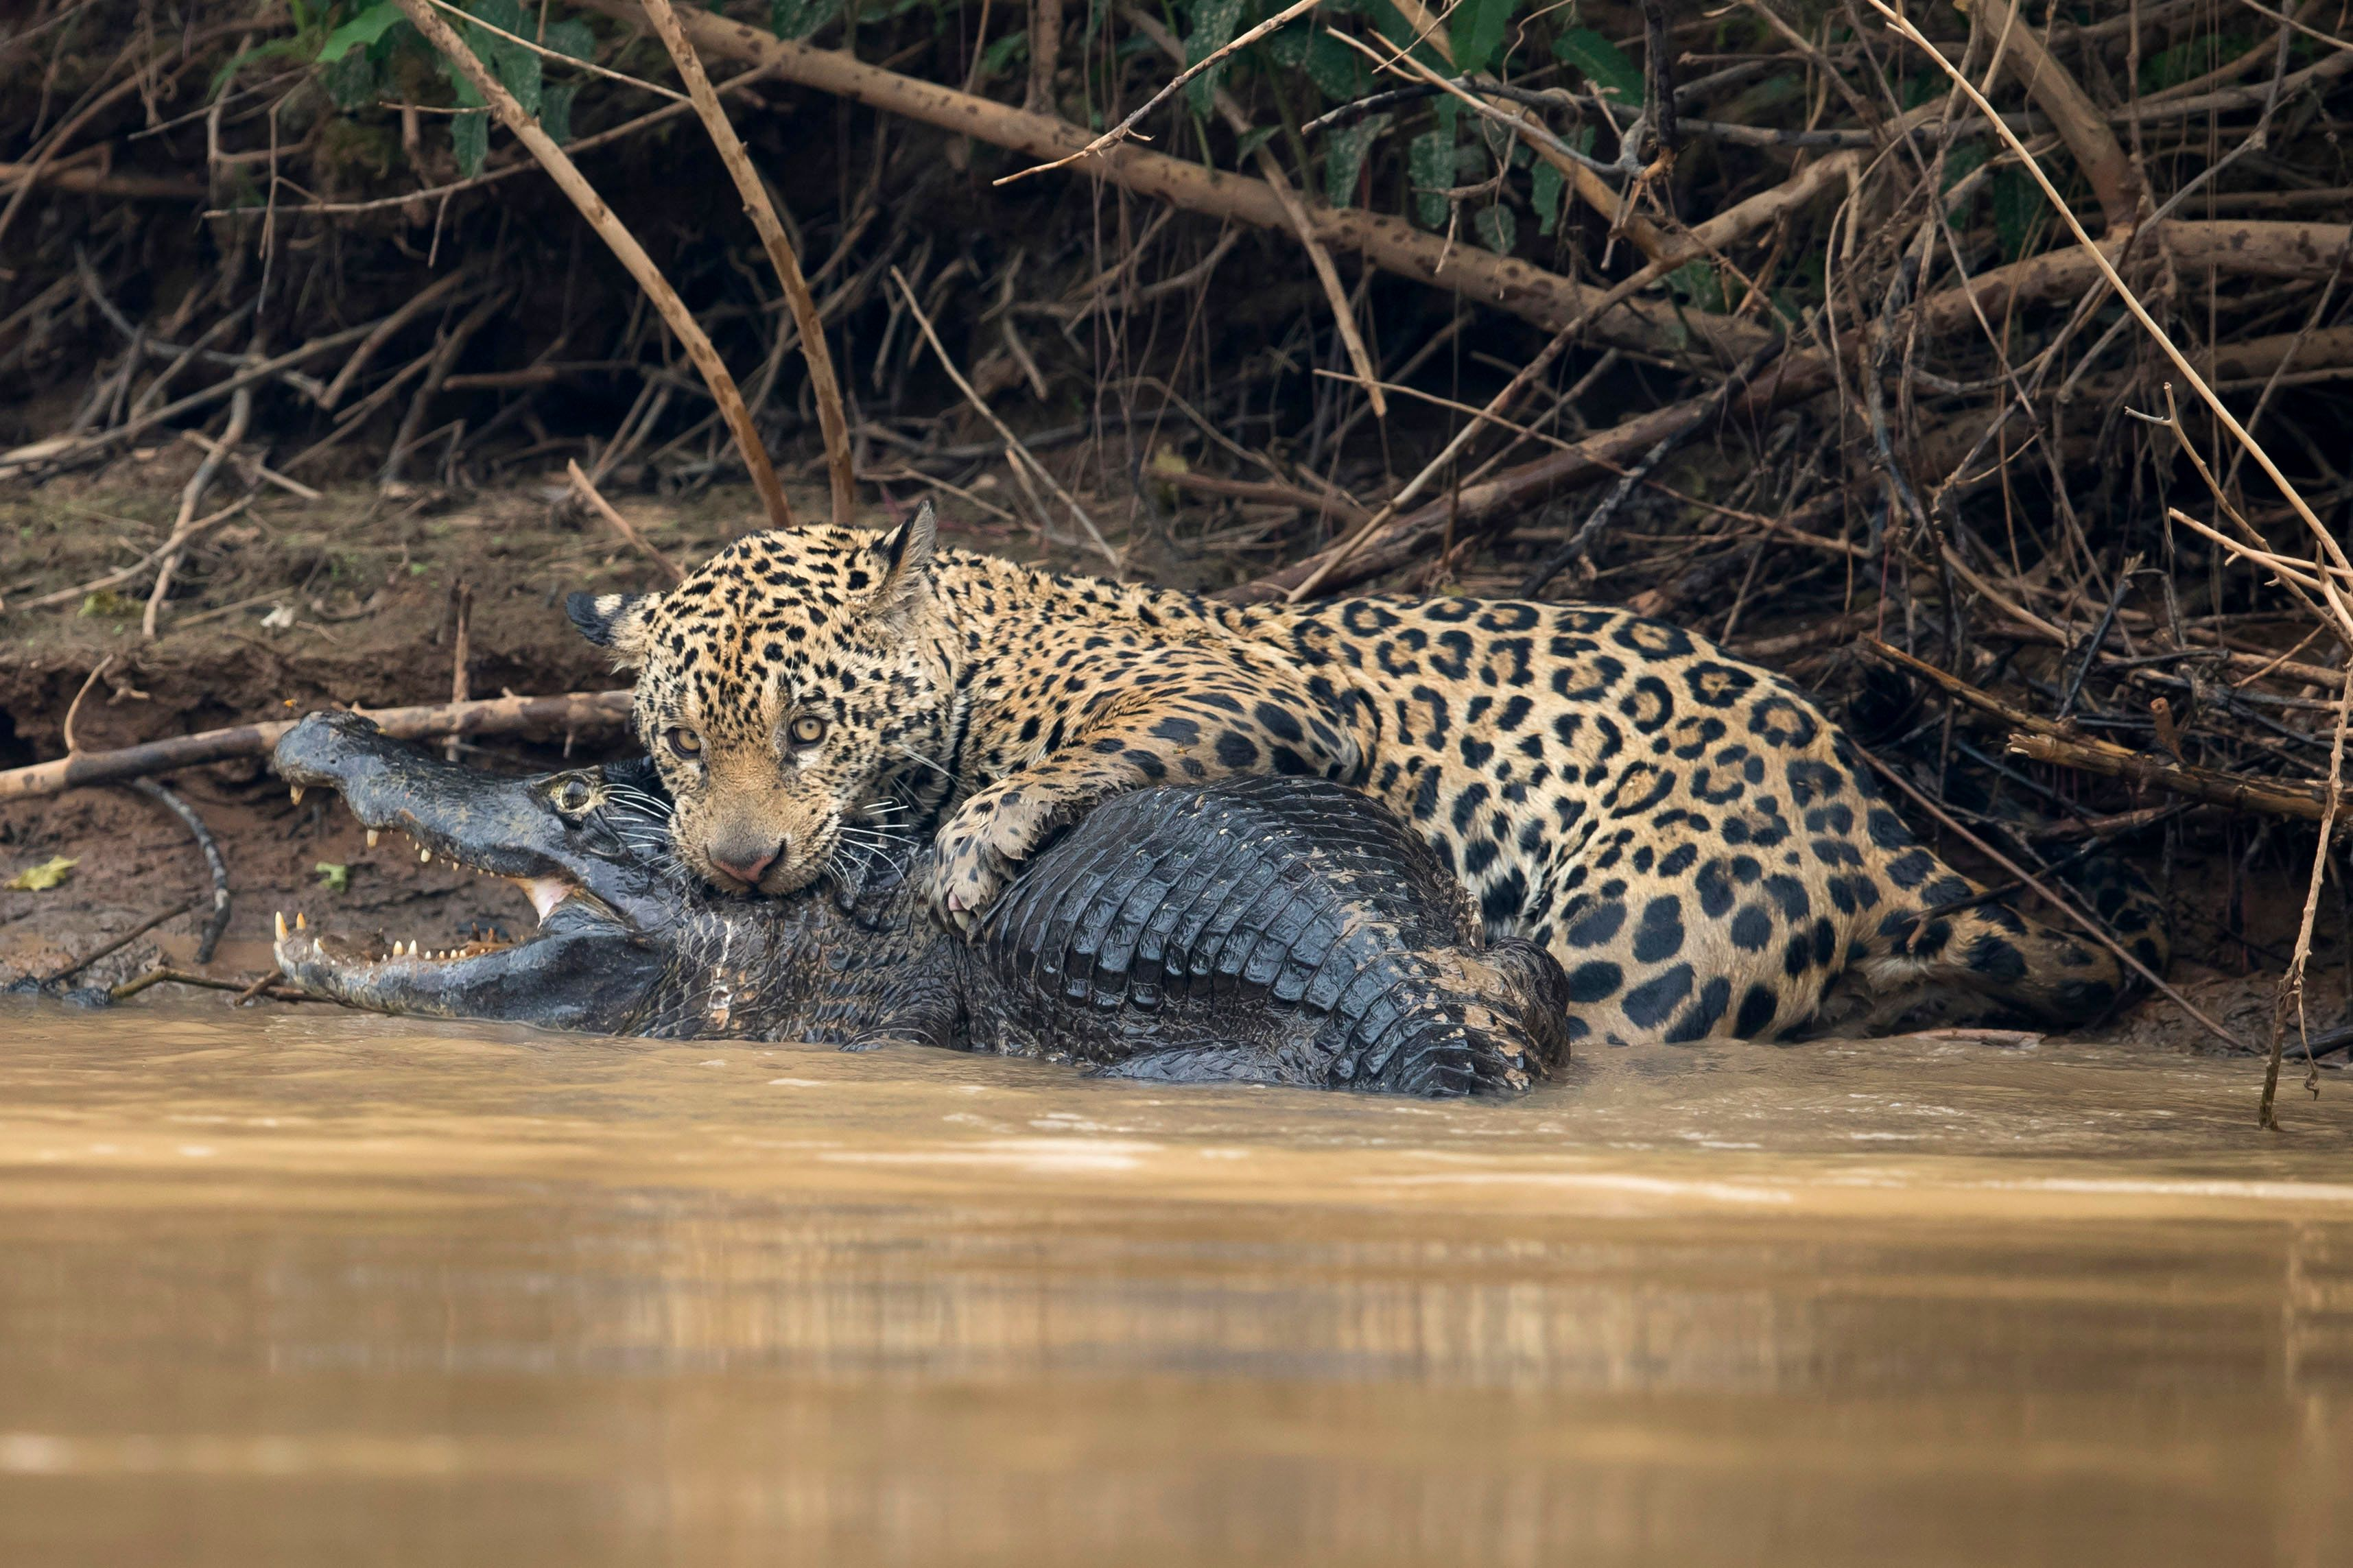 PORTO JOFRE, BRAZIL - SEPTEMBER 26: A jaguar ambushes a giant jacare caiman high up on the Three Brothers River in the Pantanal in Mato Grosso, Brazil. The cat wrestled with the reptile for over twenty minutes in a death struggle witnessed by photographer Chris Brunskill just after ten o'clock in the morning on the 26th of September, 2017. Caimans form a large part of the jaguar's diet in the Pantanal but battles such as this are very rarely observed and seldom photographed. (Photo by Chris Brunskill Ltd/Getty Images)